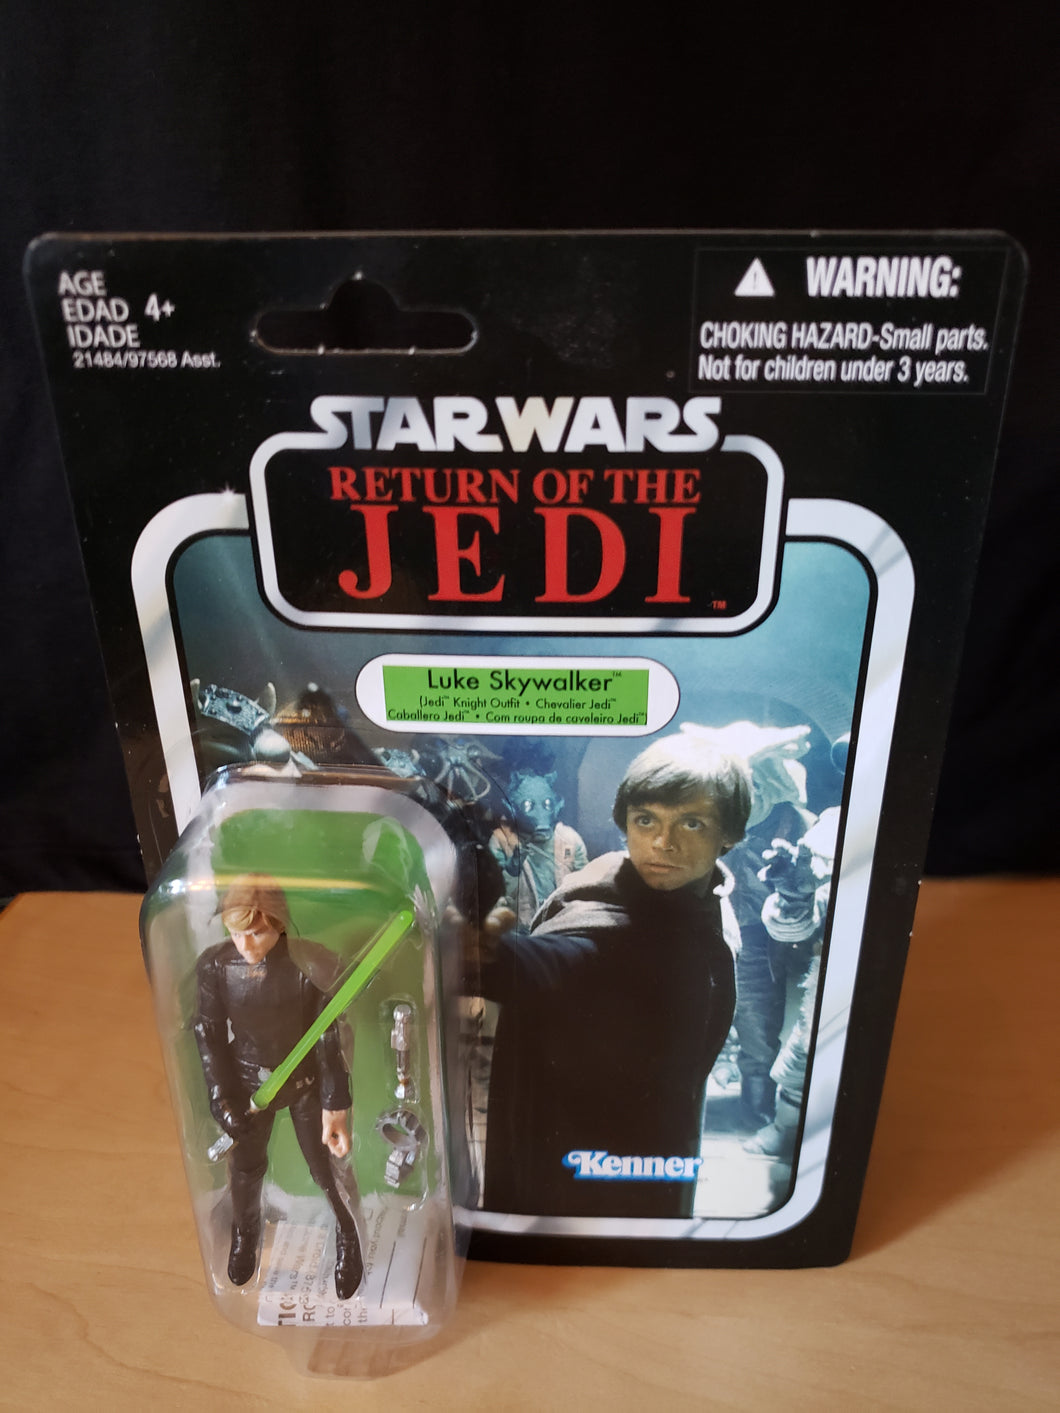 2010 Star Wars TVC Return of the Jedi - Luke Skywalker (Jedi Knight Outfit) VC23